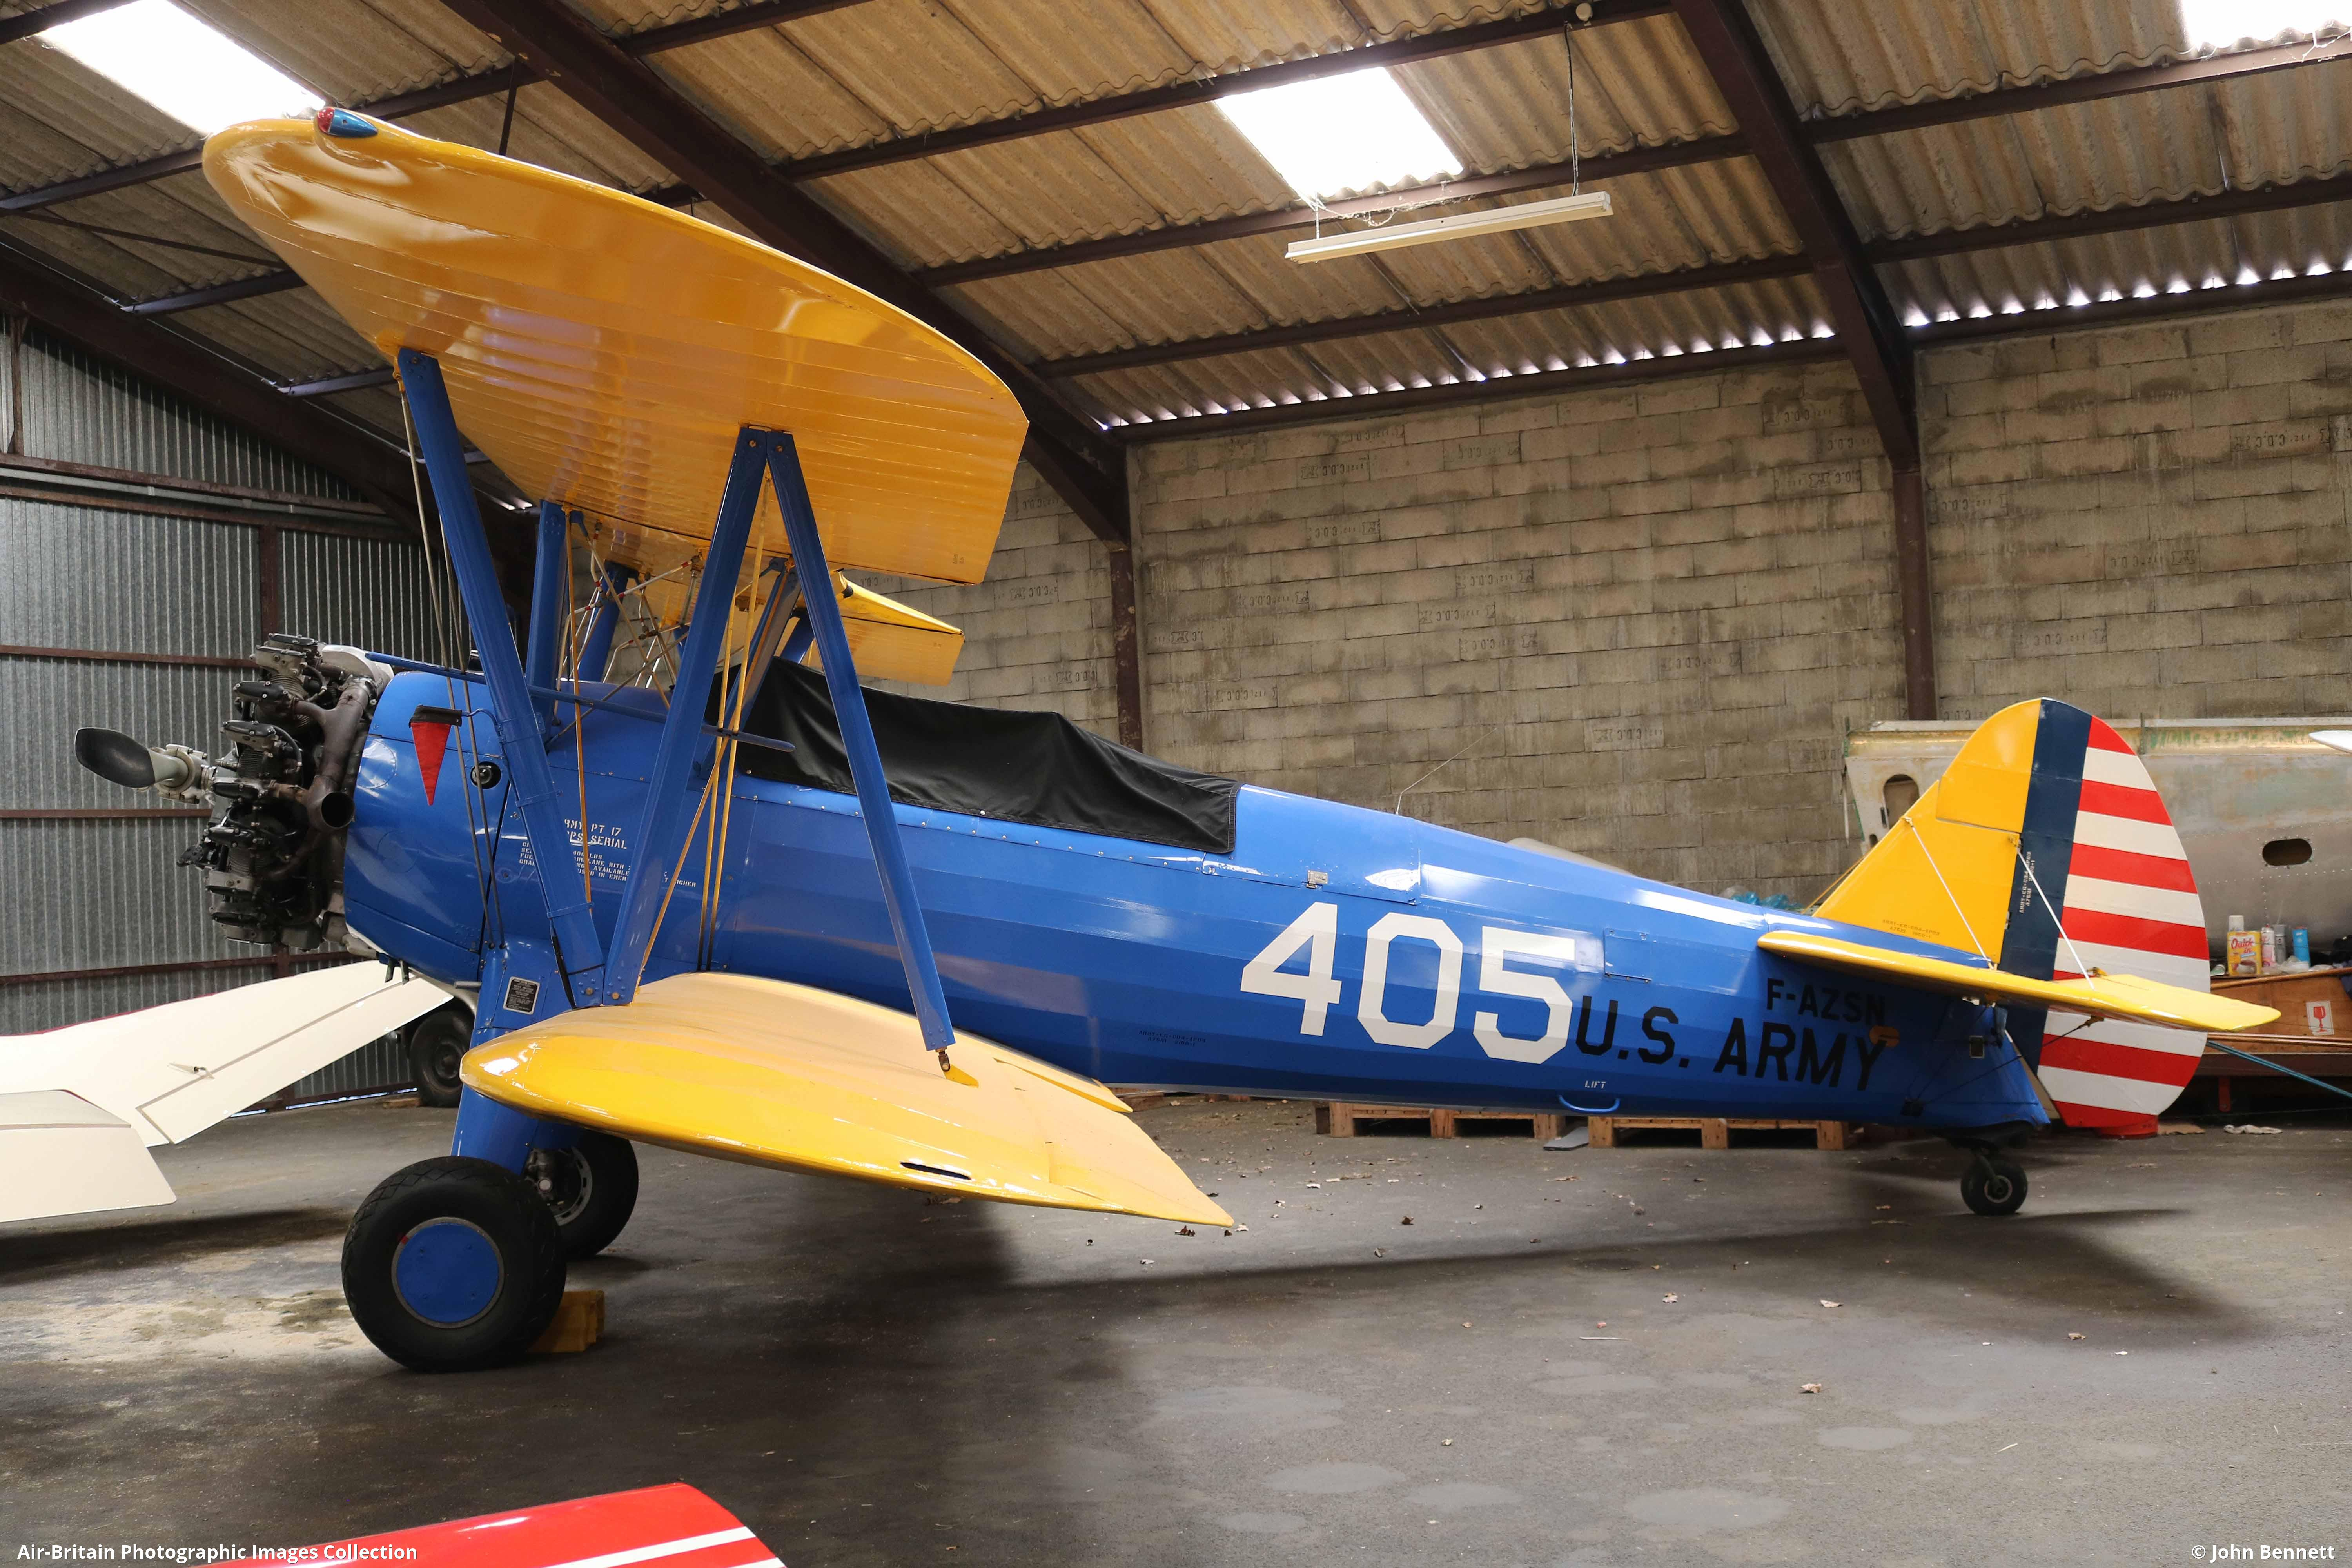 Boeing PT-17 Stearman Kaydet, F-AZSN / 75-442, Private : ABPic